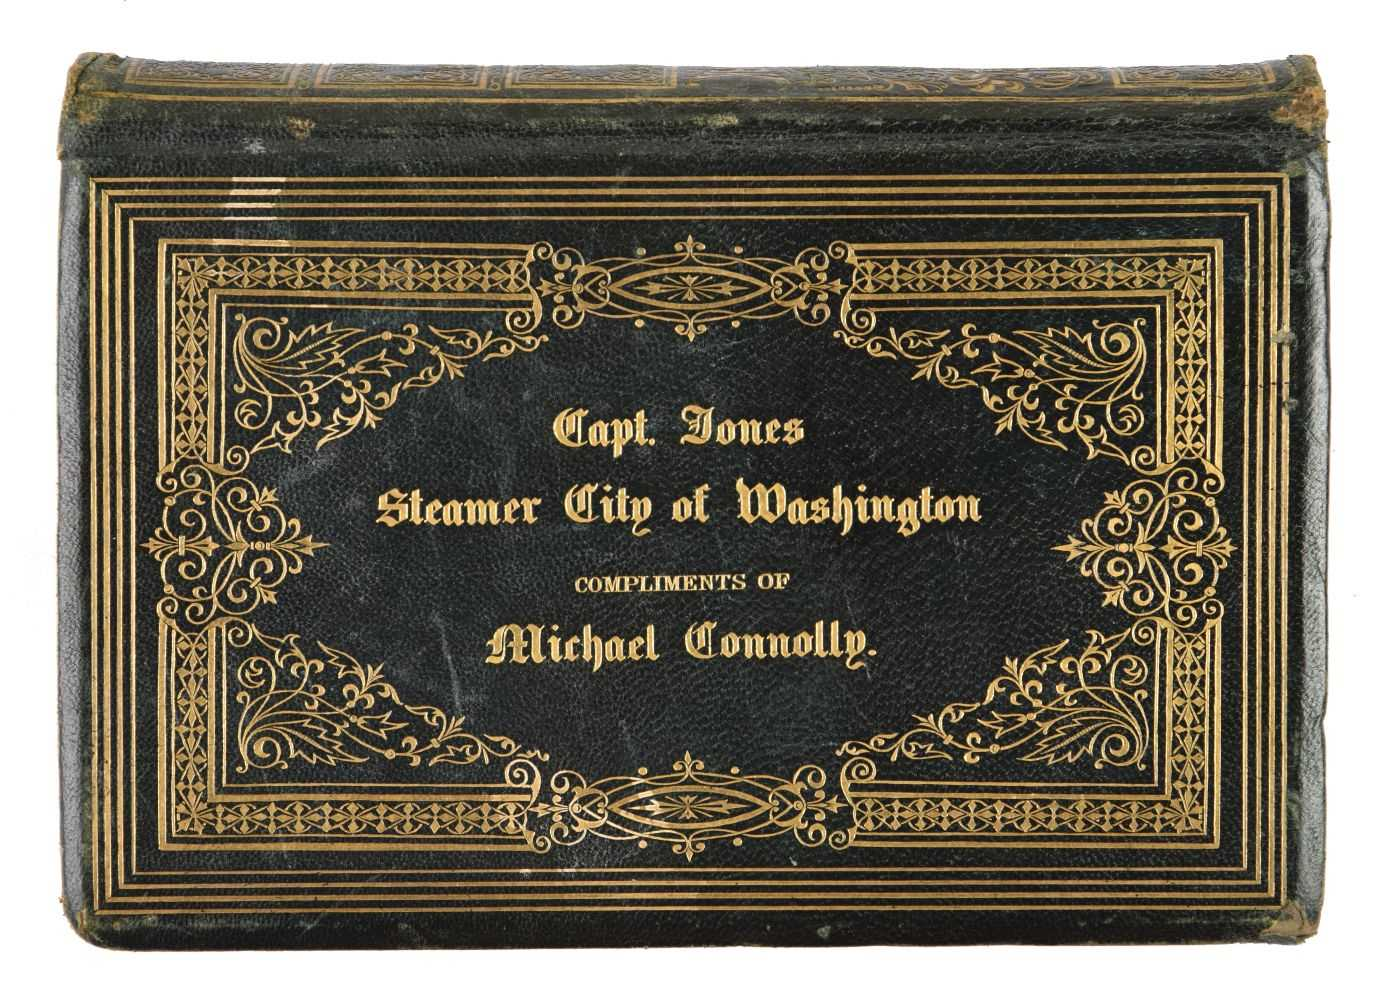 Lot 30-Shannon (Joseph). Manual of the Corporation of the City of New York, 1869